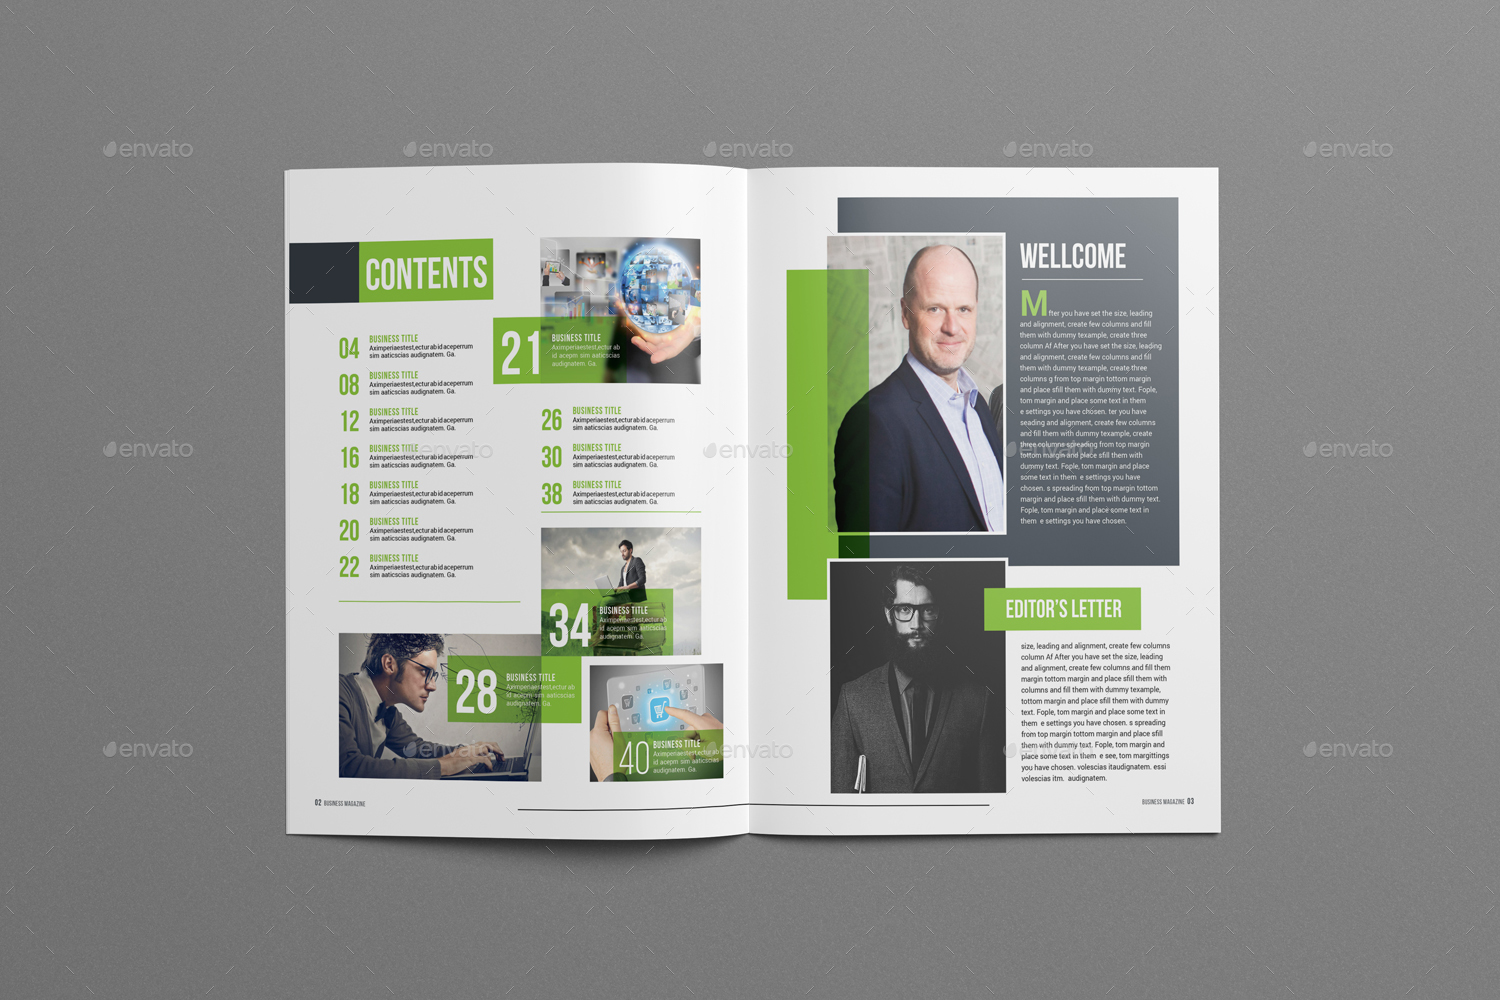 Business magazine template by designsoul14 graphicriver business magazine template magazines print templates preview image setpreview image01g preview image setpreview image02g cheaphphosting Images